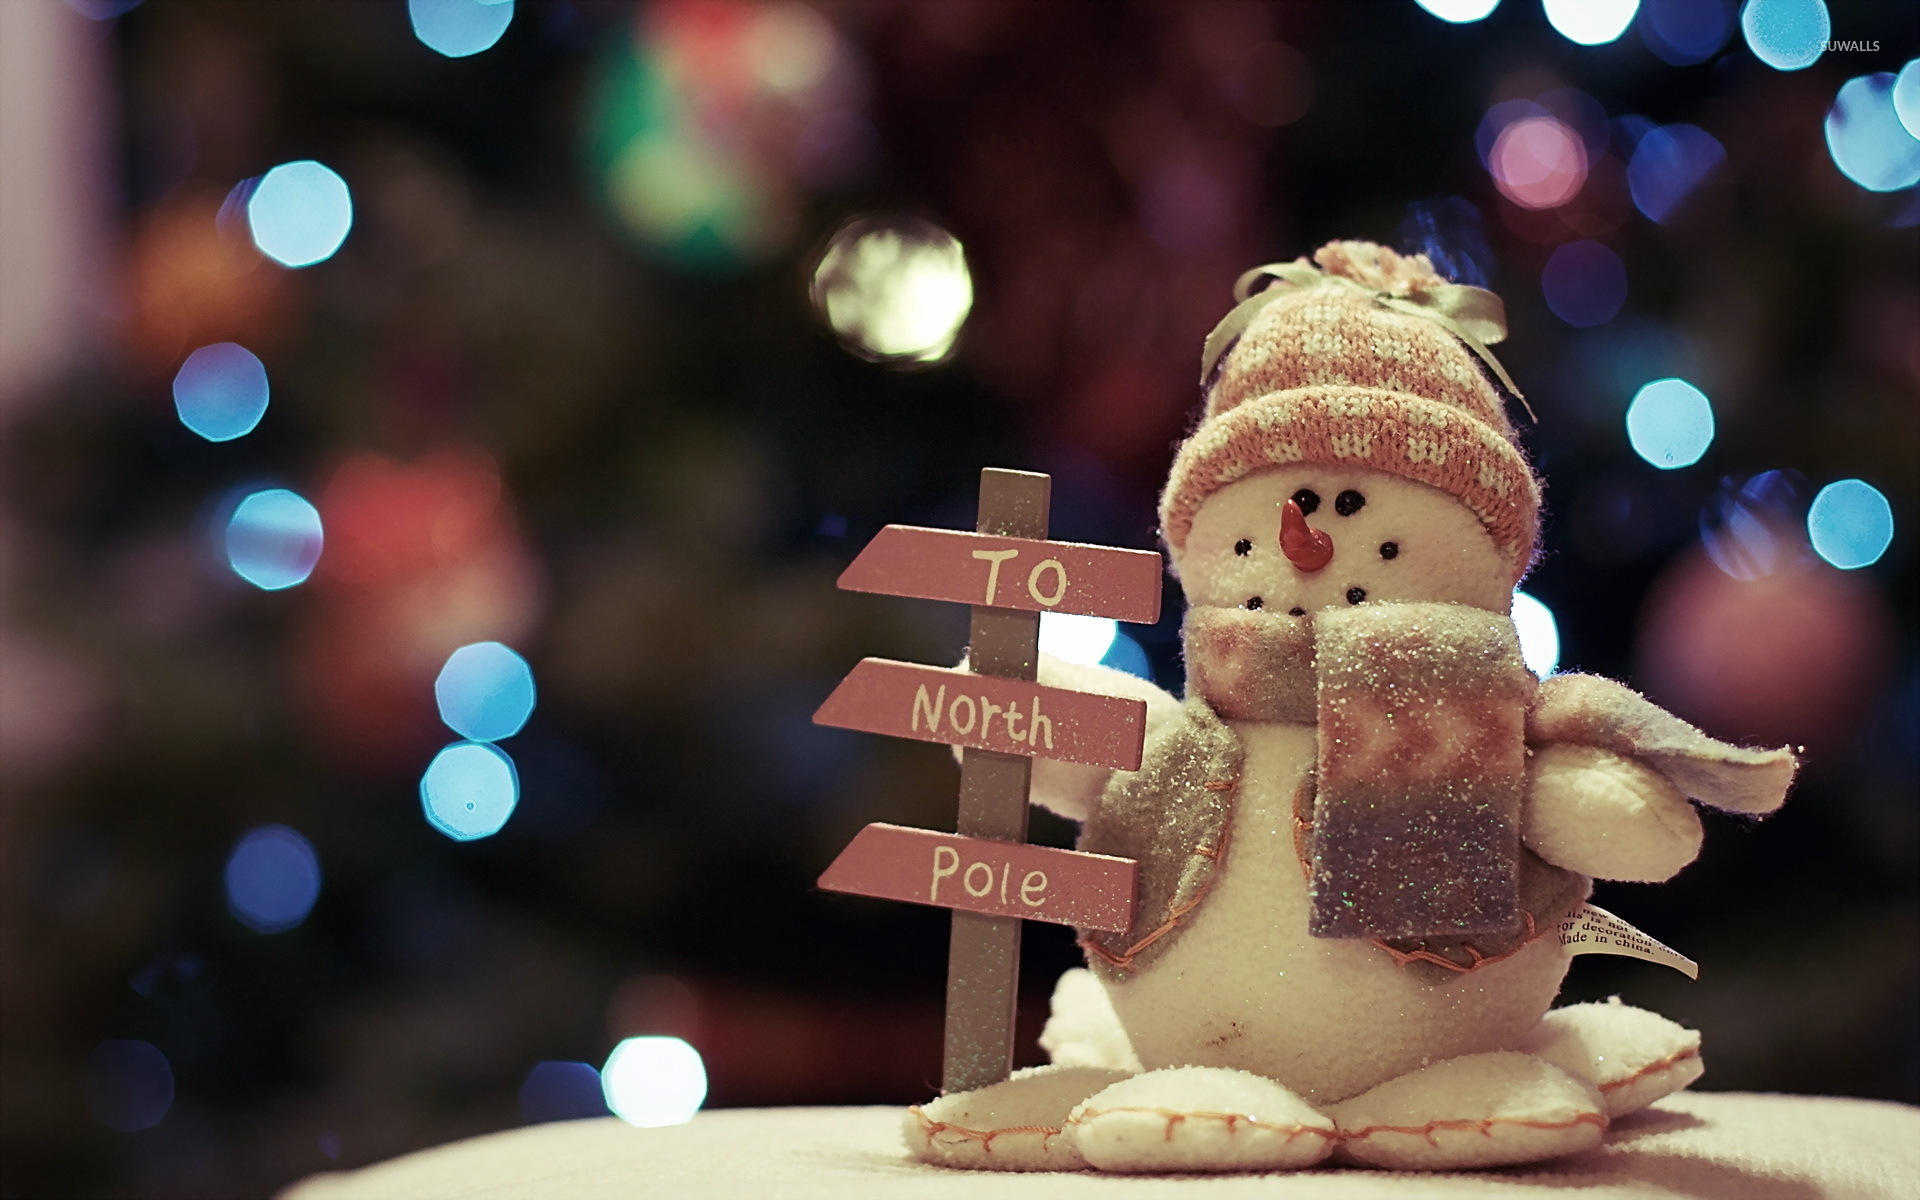 Snowman going to the North Pole wallpaper   Holiday wallpapers 1920x1200